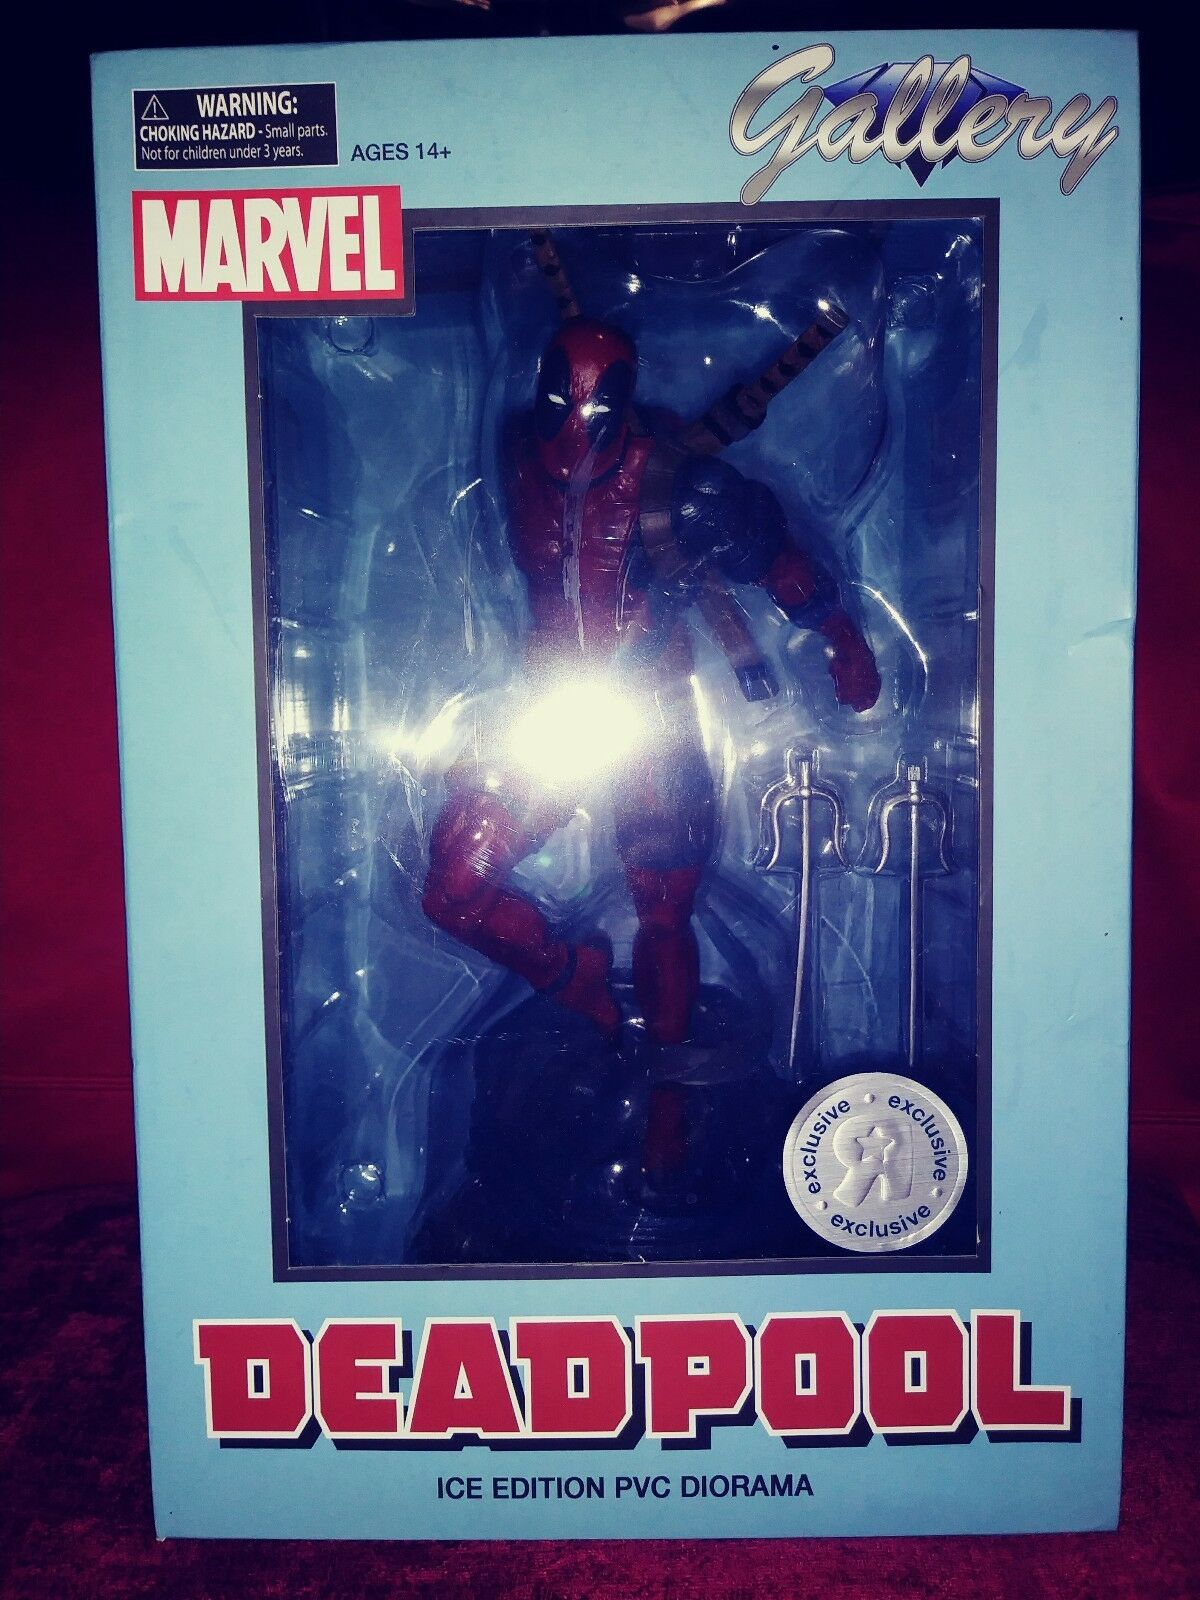 Marvel fr deadpool diamond gallery pvc - statue und eis edition sammlerstck